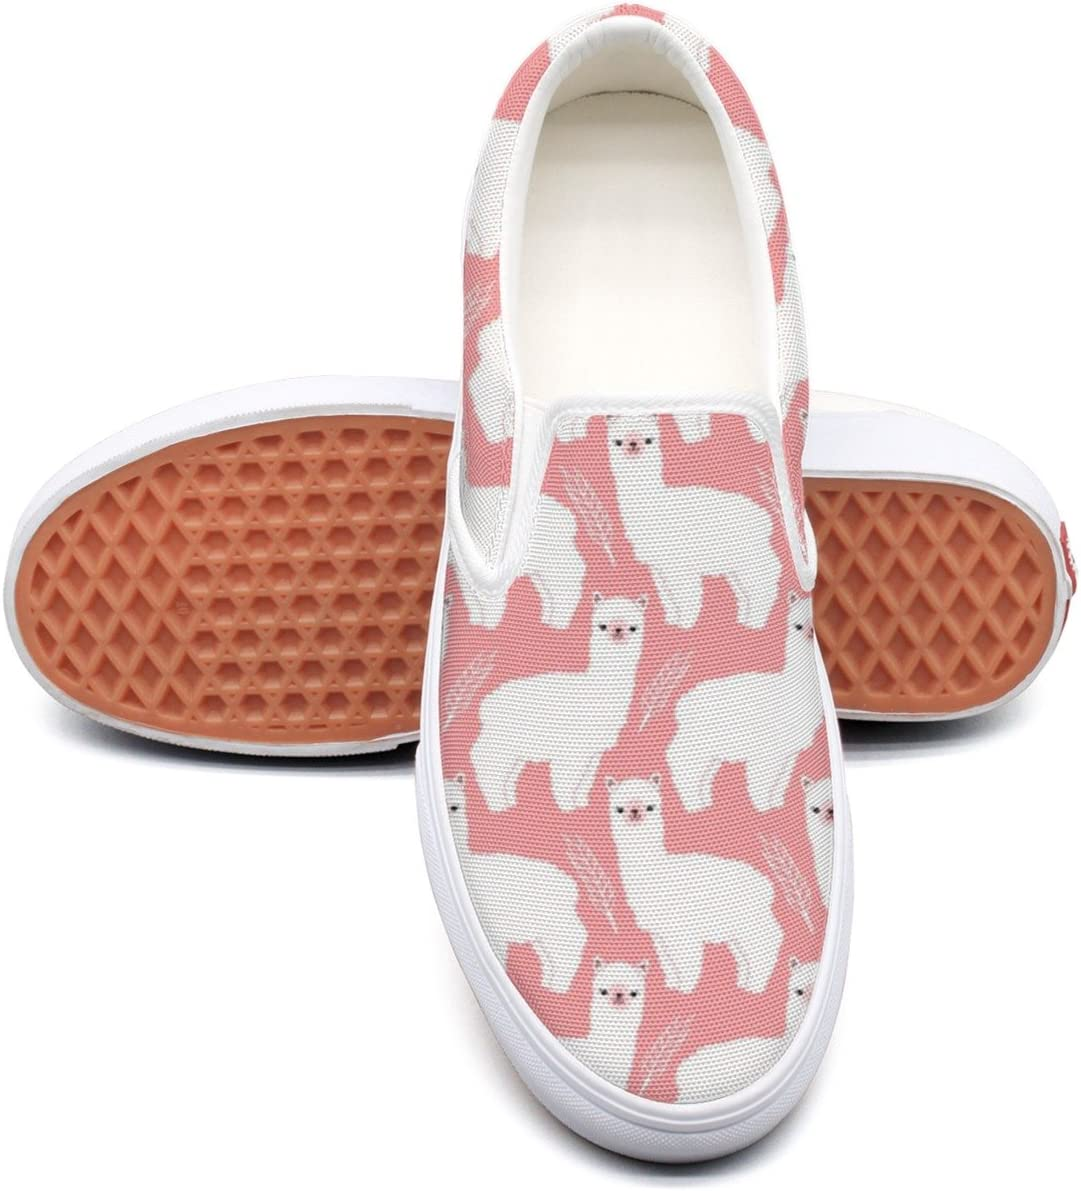 seventtynine Pink Llama Classic Women Canvas Slip-Ons Loafer Shoes Sneaker